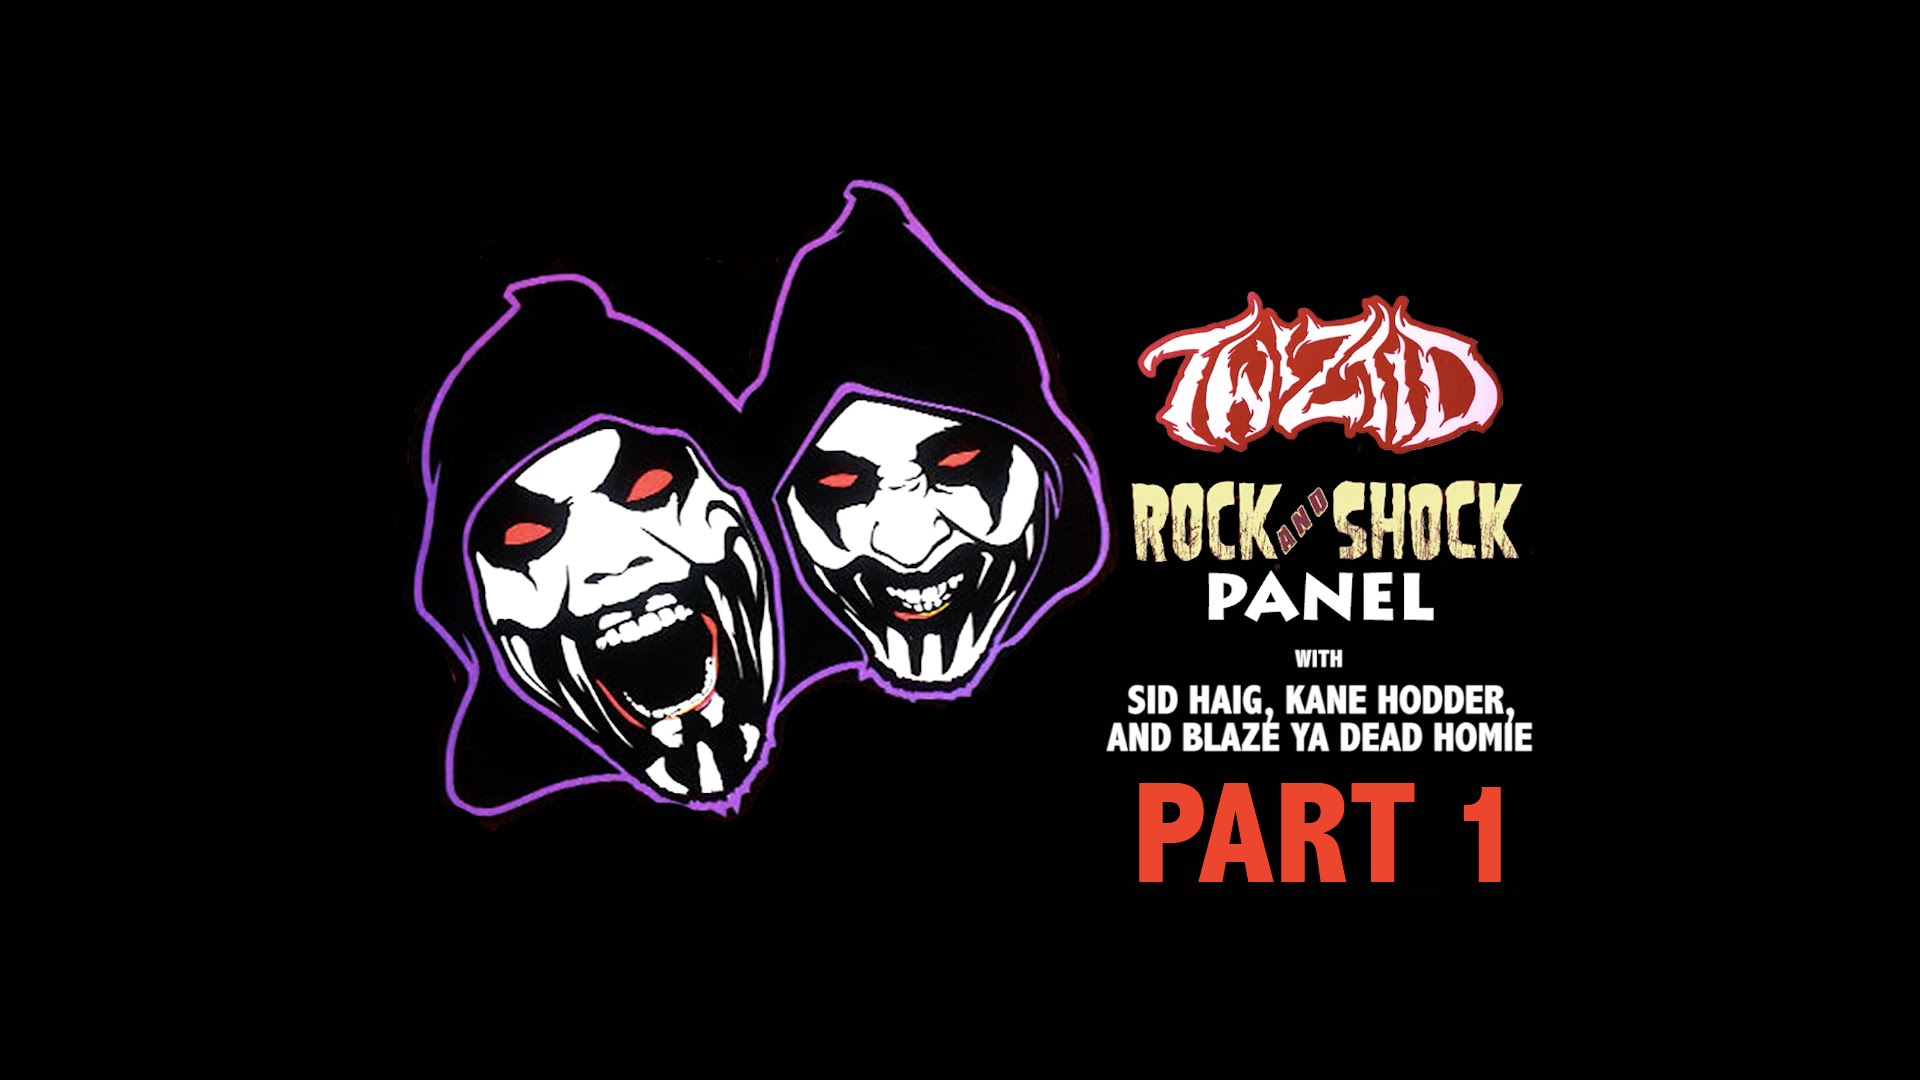 twiztid rock and shock panel part 1 faygoluvers